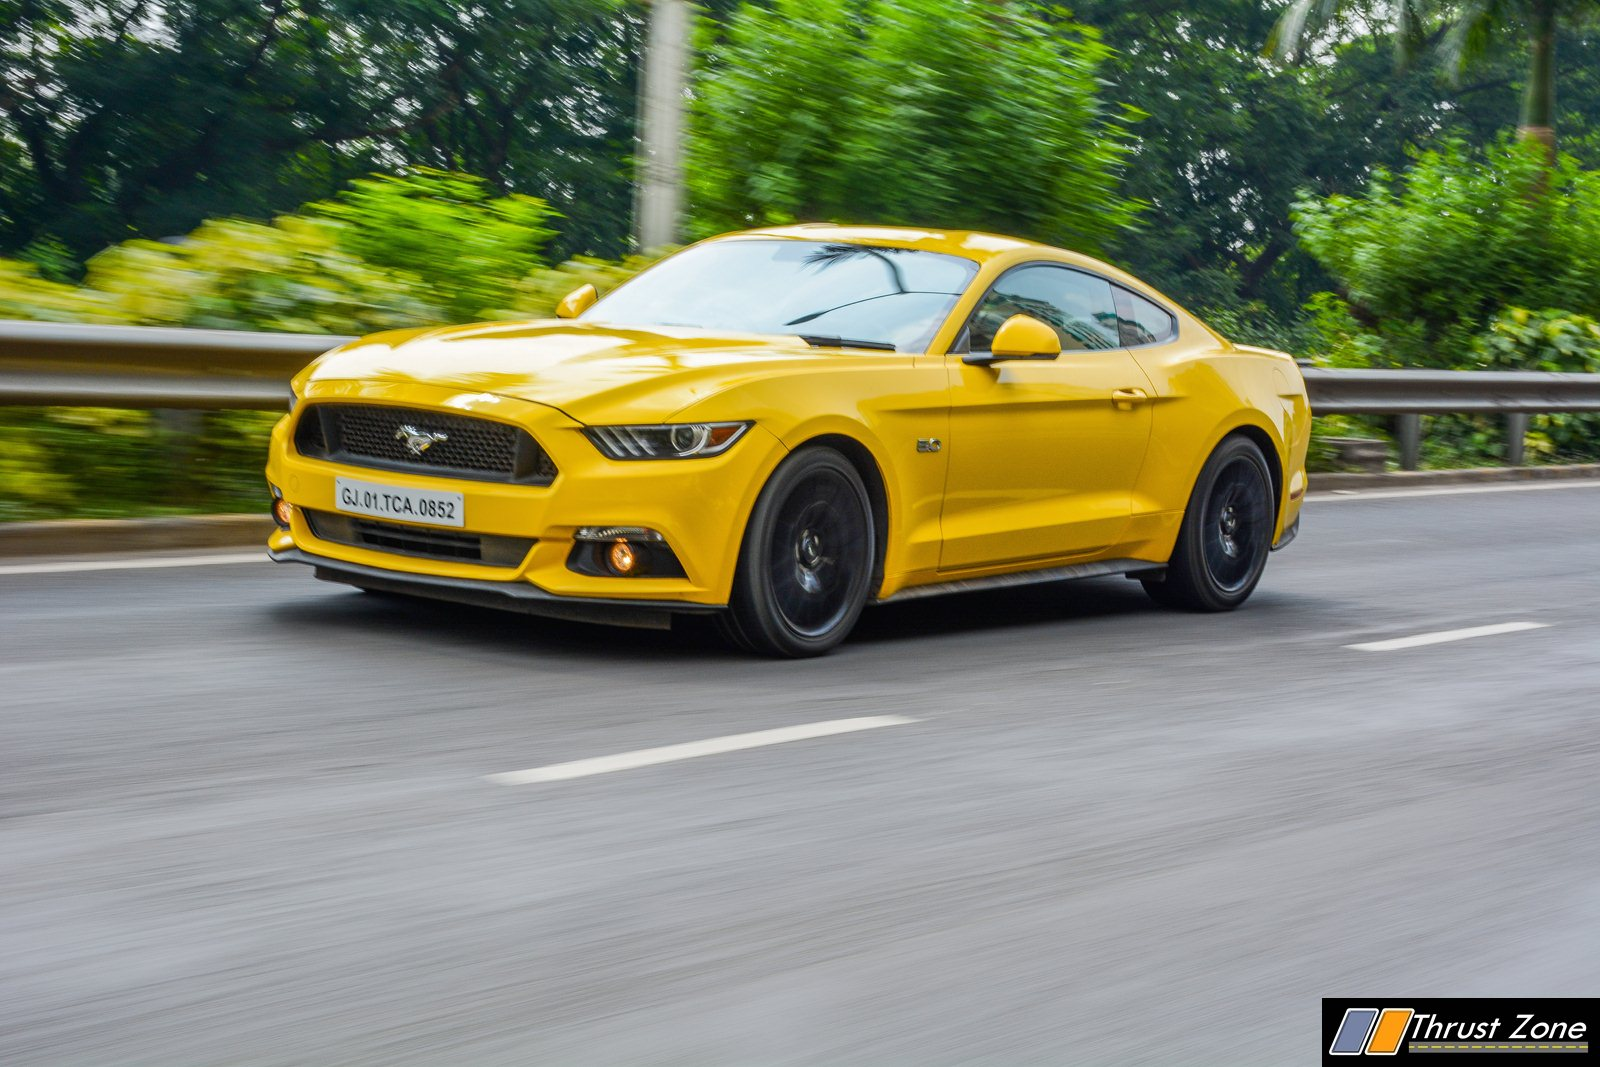 https://www.thrustzone.com/wp-content/uploads/2018/09/Ford-Mustang-India-V8-Review-11.jpg